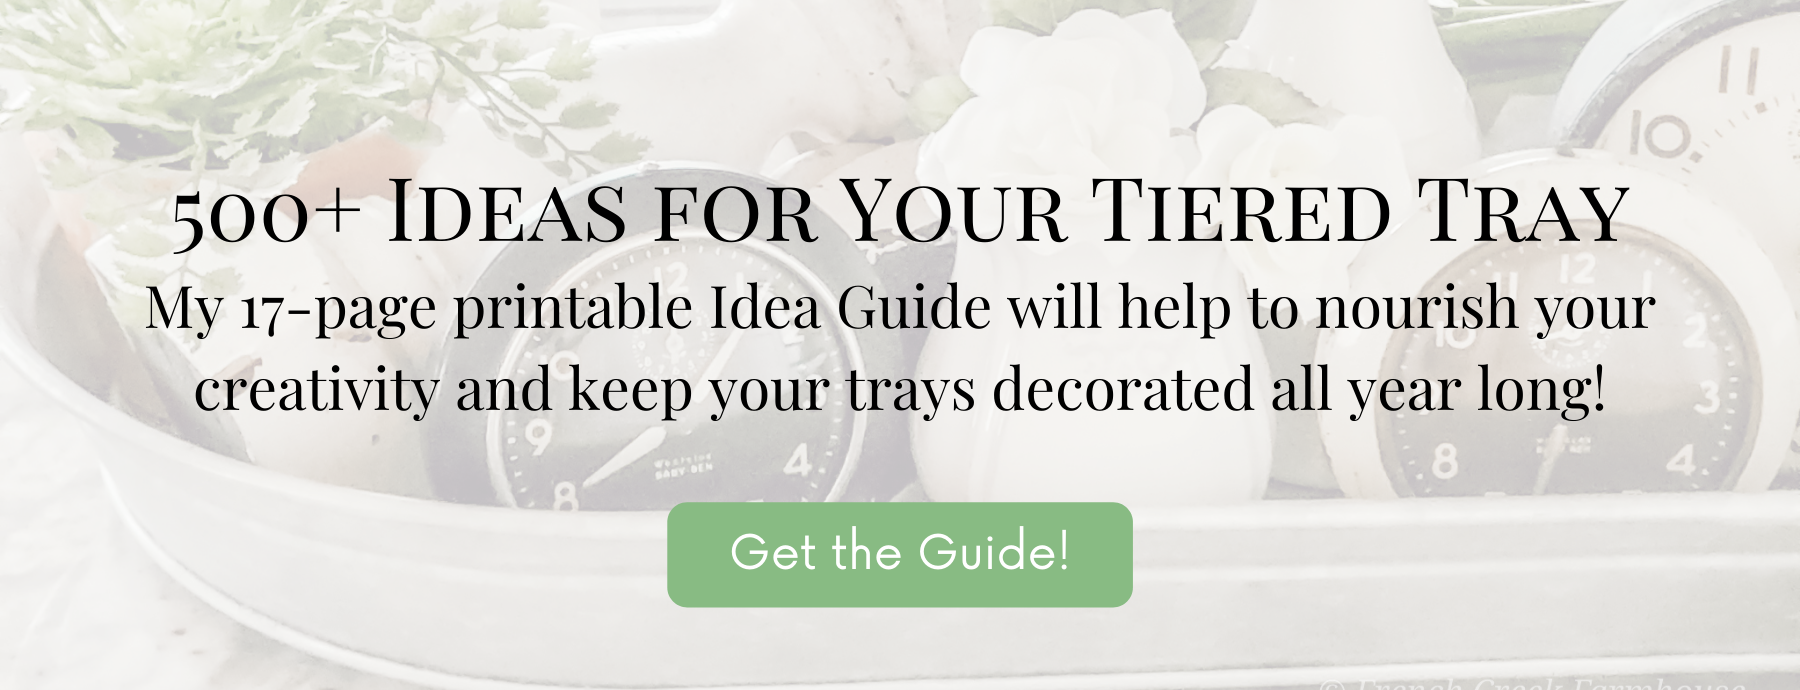 This 17-page printable guide will give you loads of ideas for decorating your tiered tray all year long